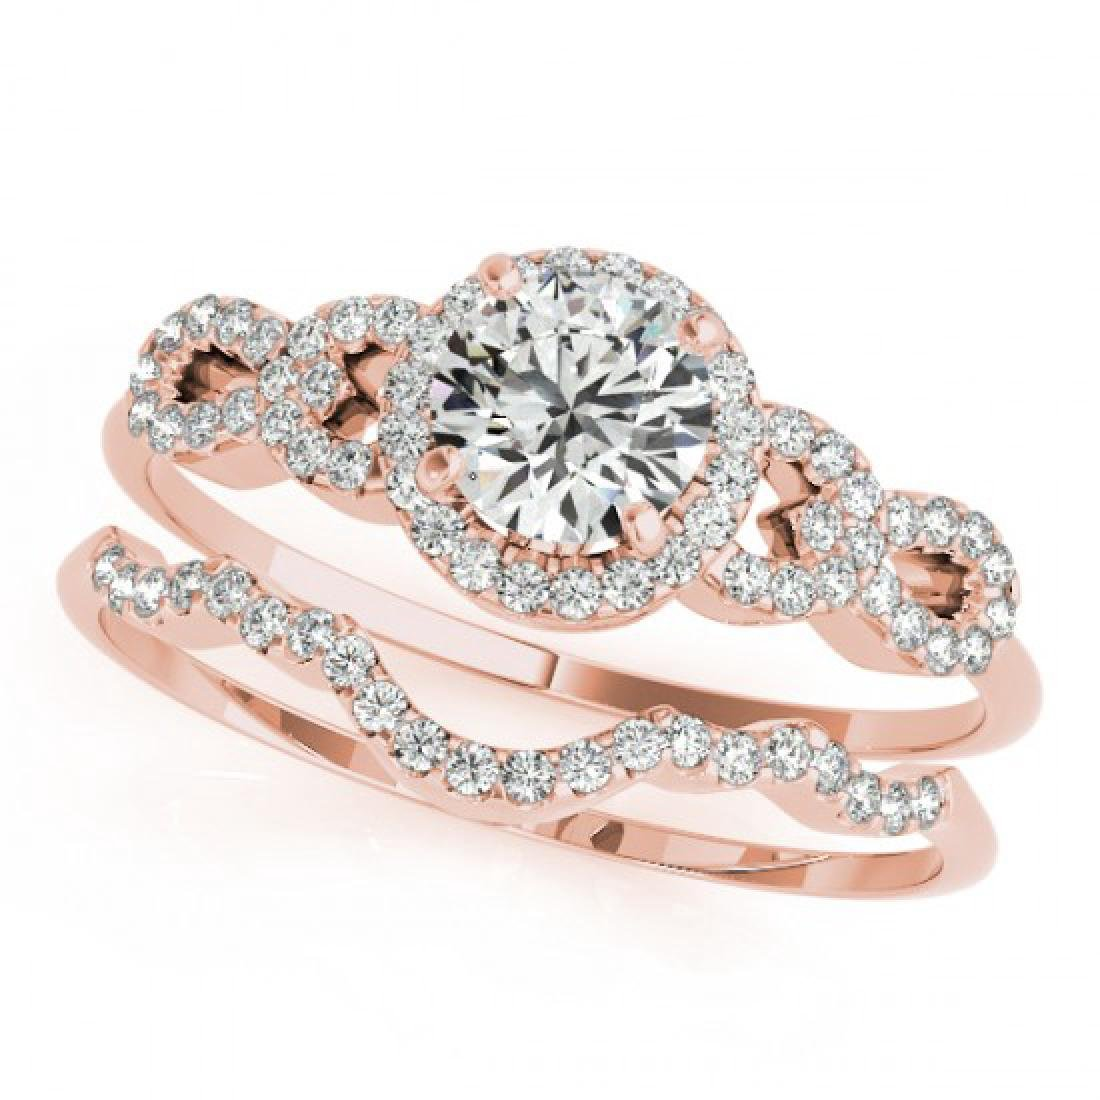 1.43 CTW Certified VS/SI Diamond Solitaire 2Pc Wedding